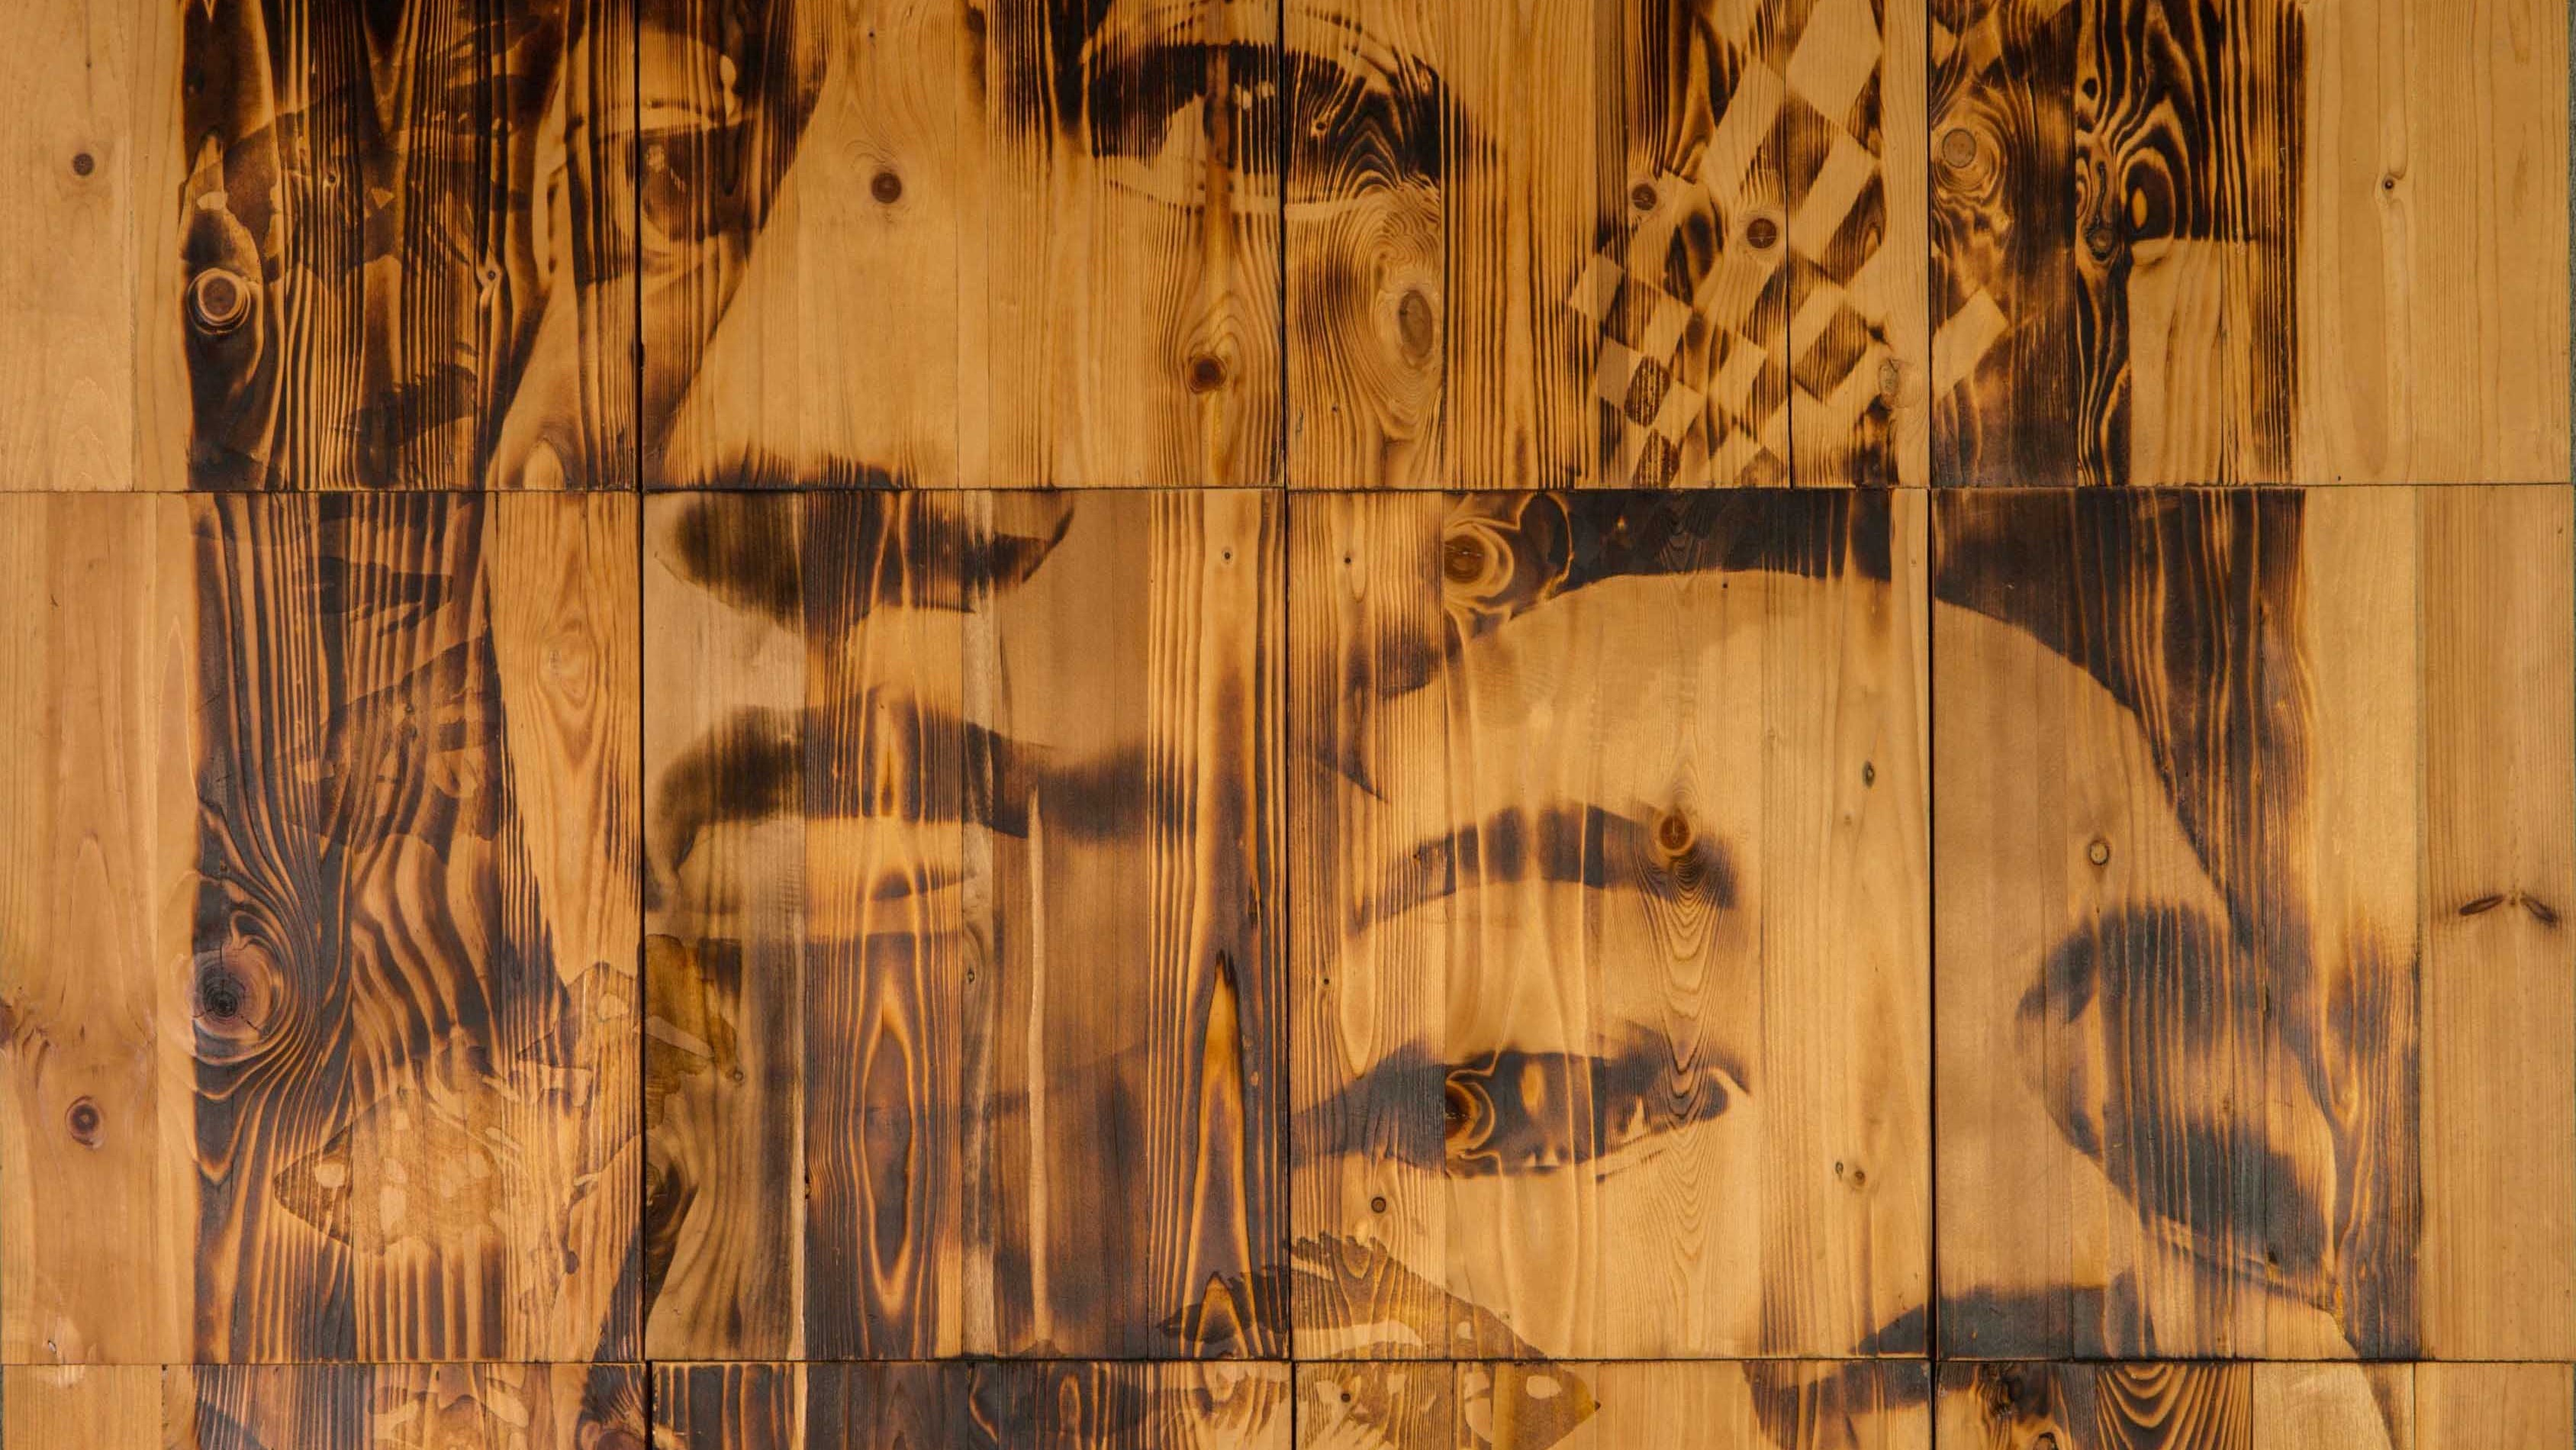 portrait etchings on wood